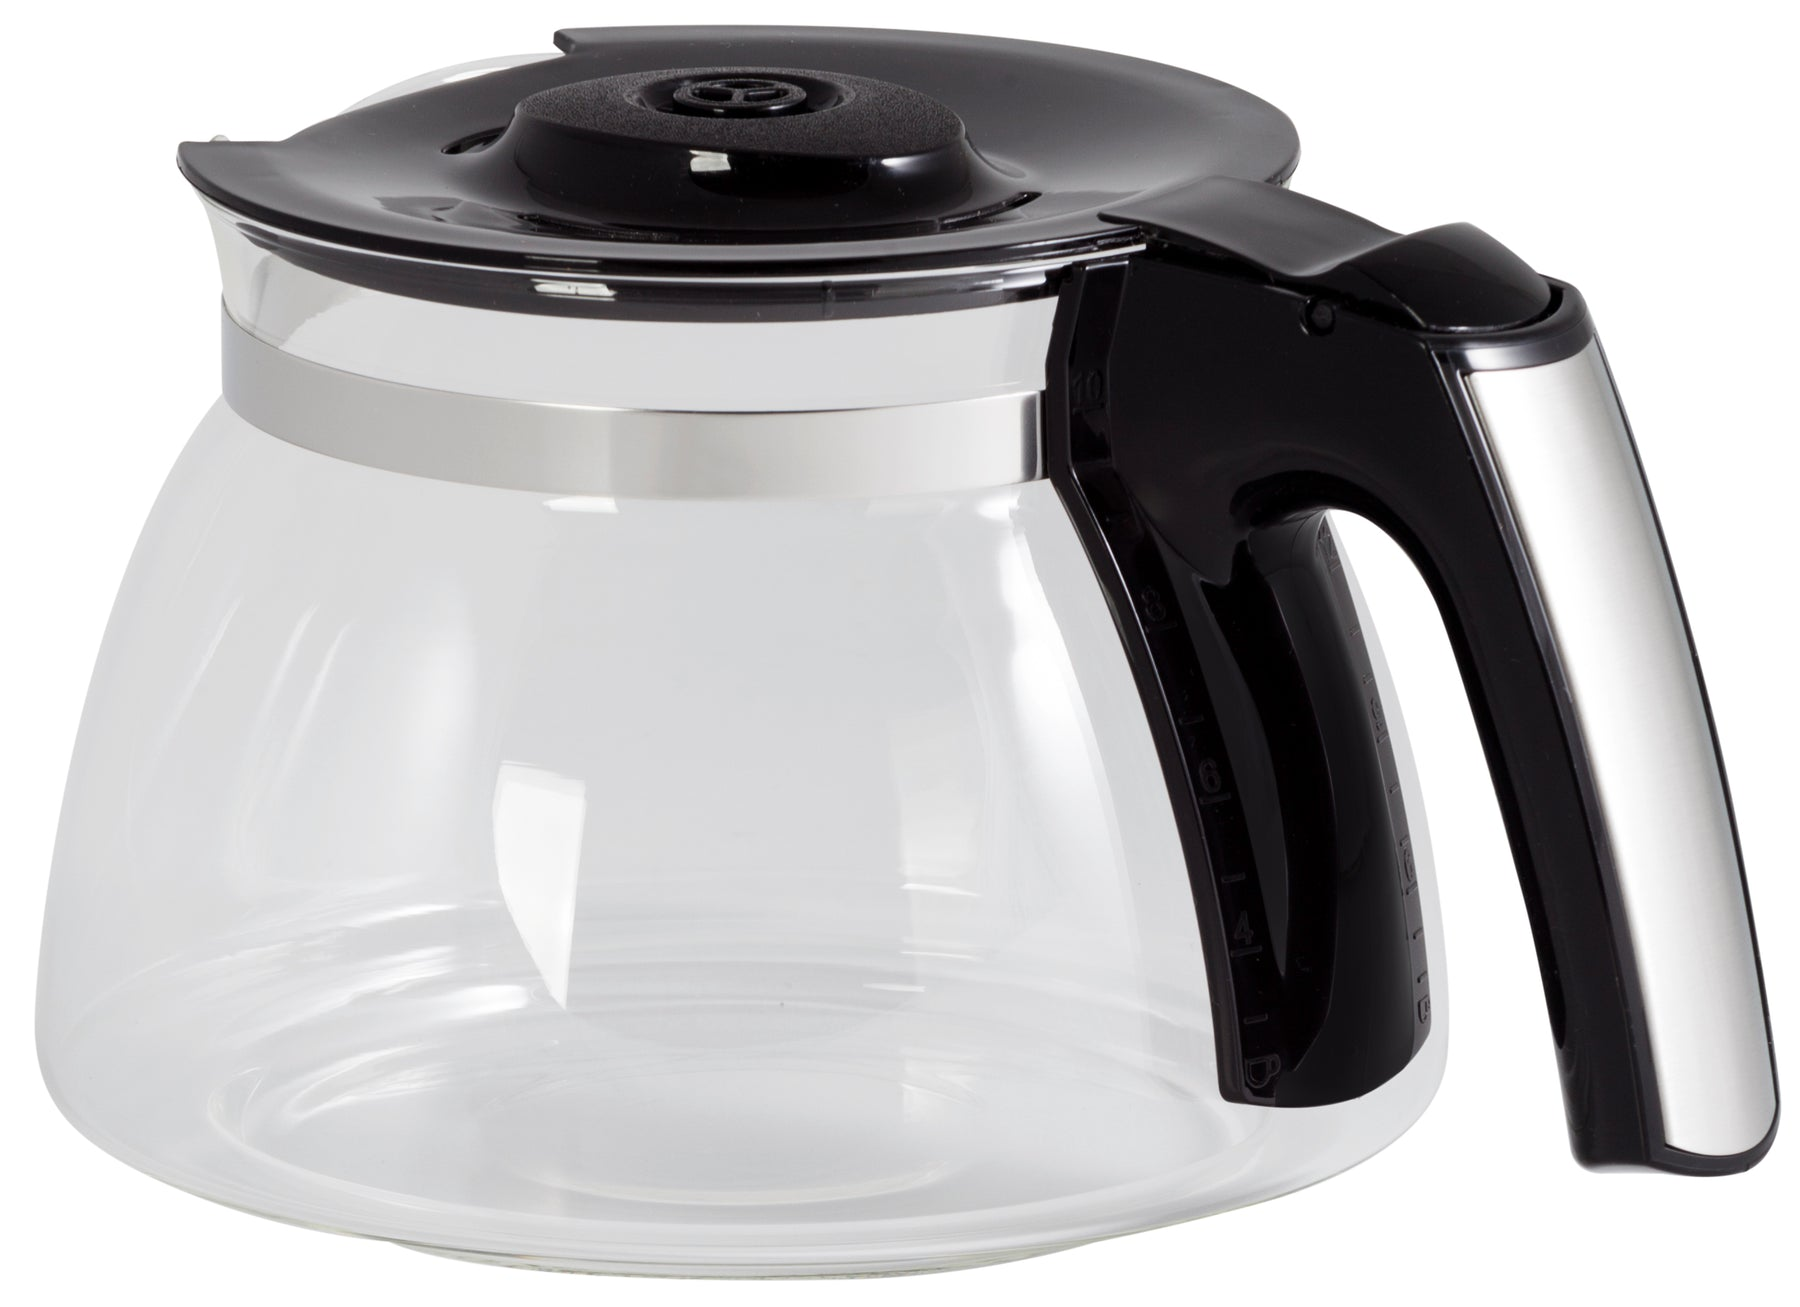 Melitta Spare Glass Jug for Grind and Brew (6758146)